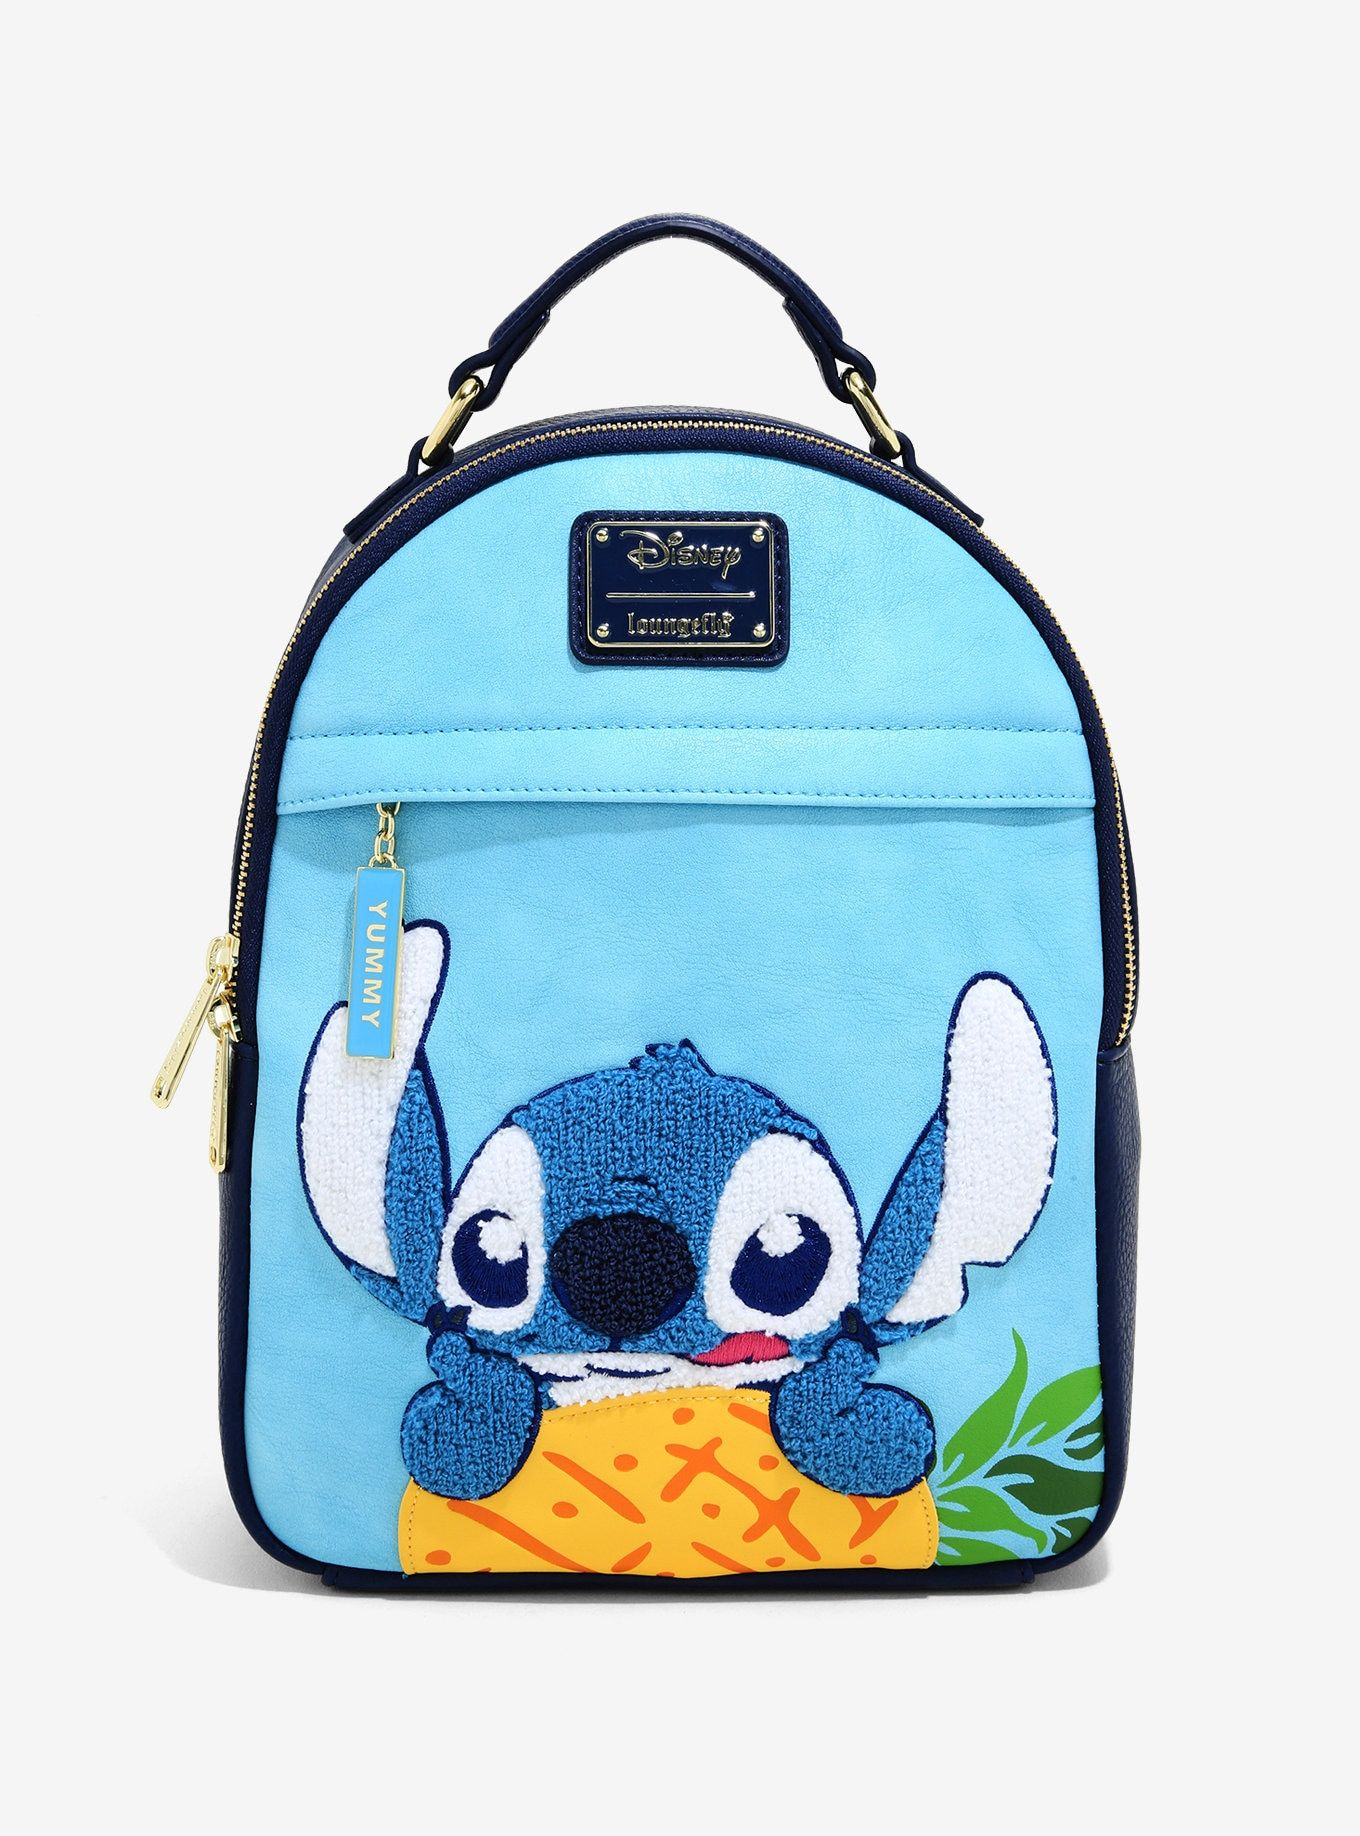 Loungefly Disney Lilo /& Stitch Pineapple Chenille Satchel Purse NWT